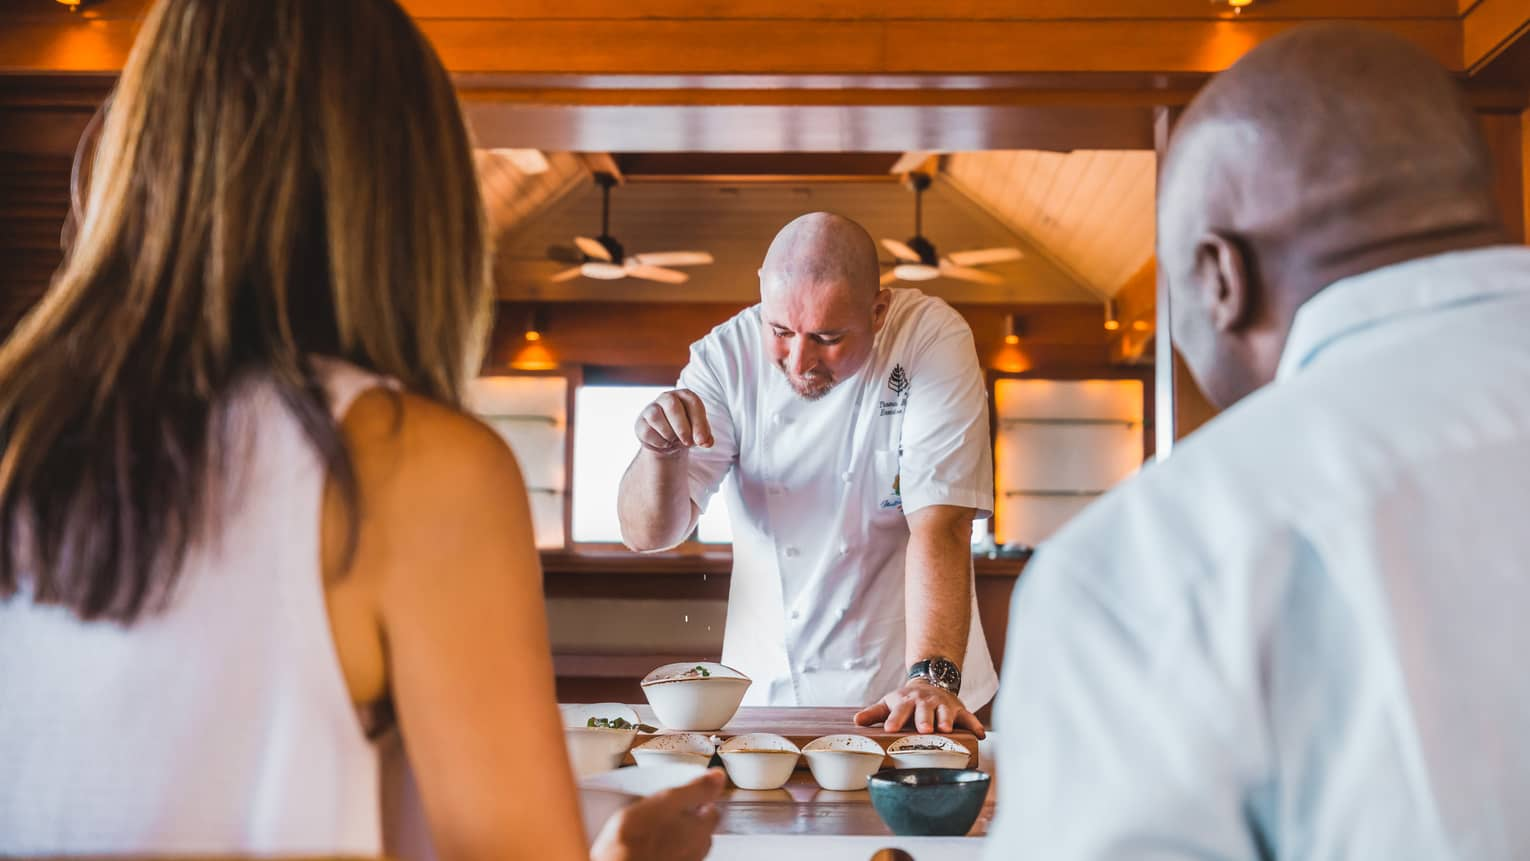 Guests watch as a chef sprinkles spices onto a special dish